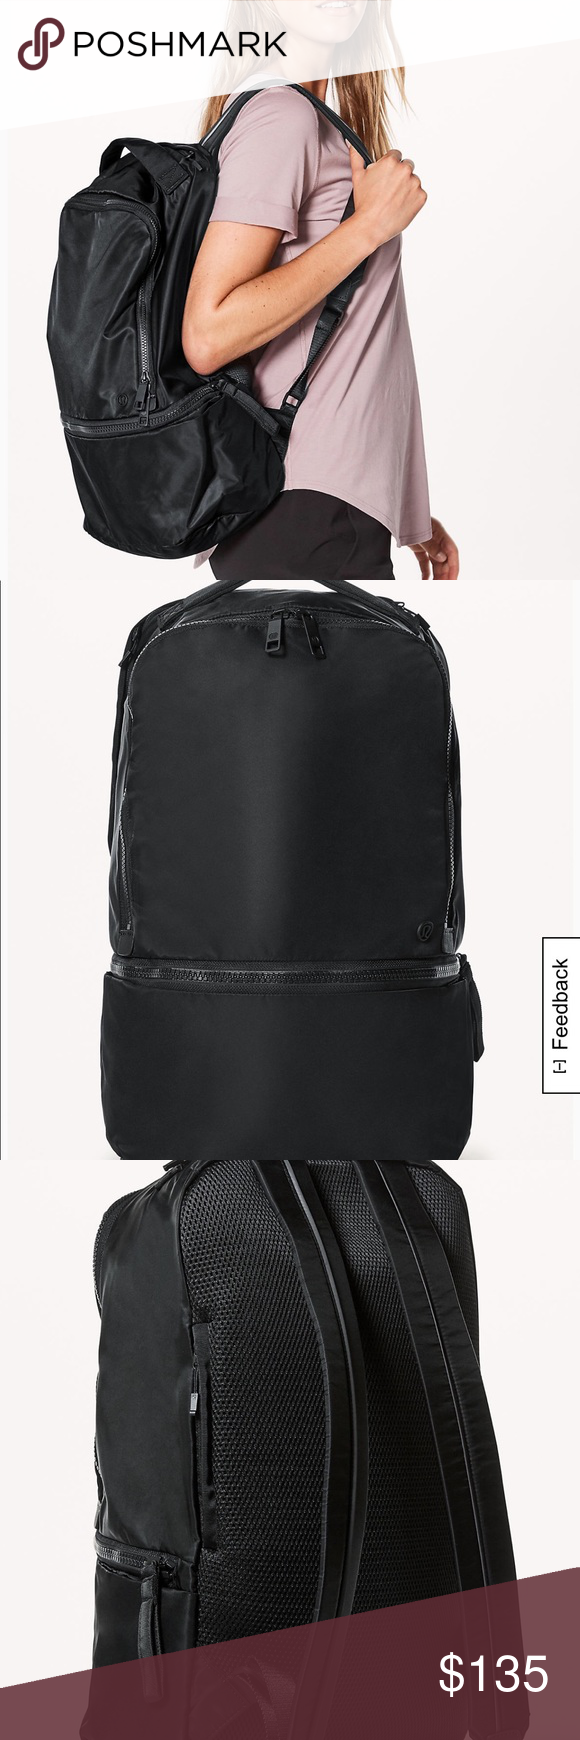 5475dd1bf0 Lululemon City Adventurer Backpack Large 24L You re good to go from work to  workout